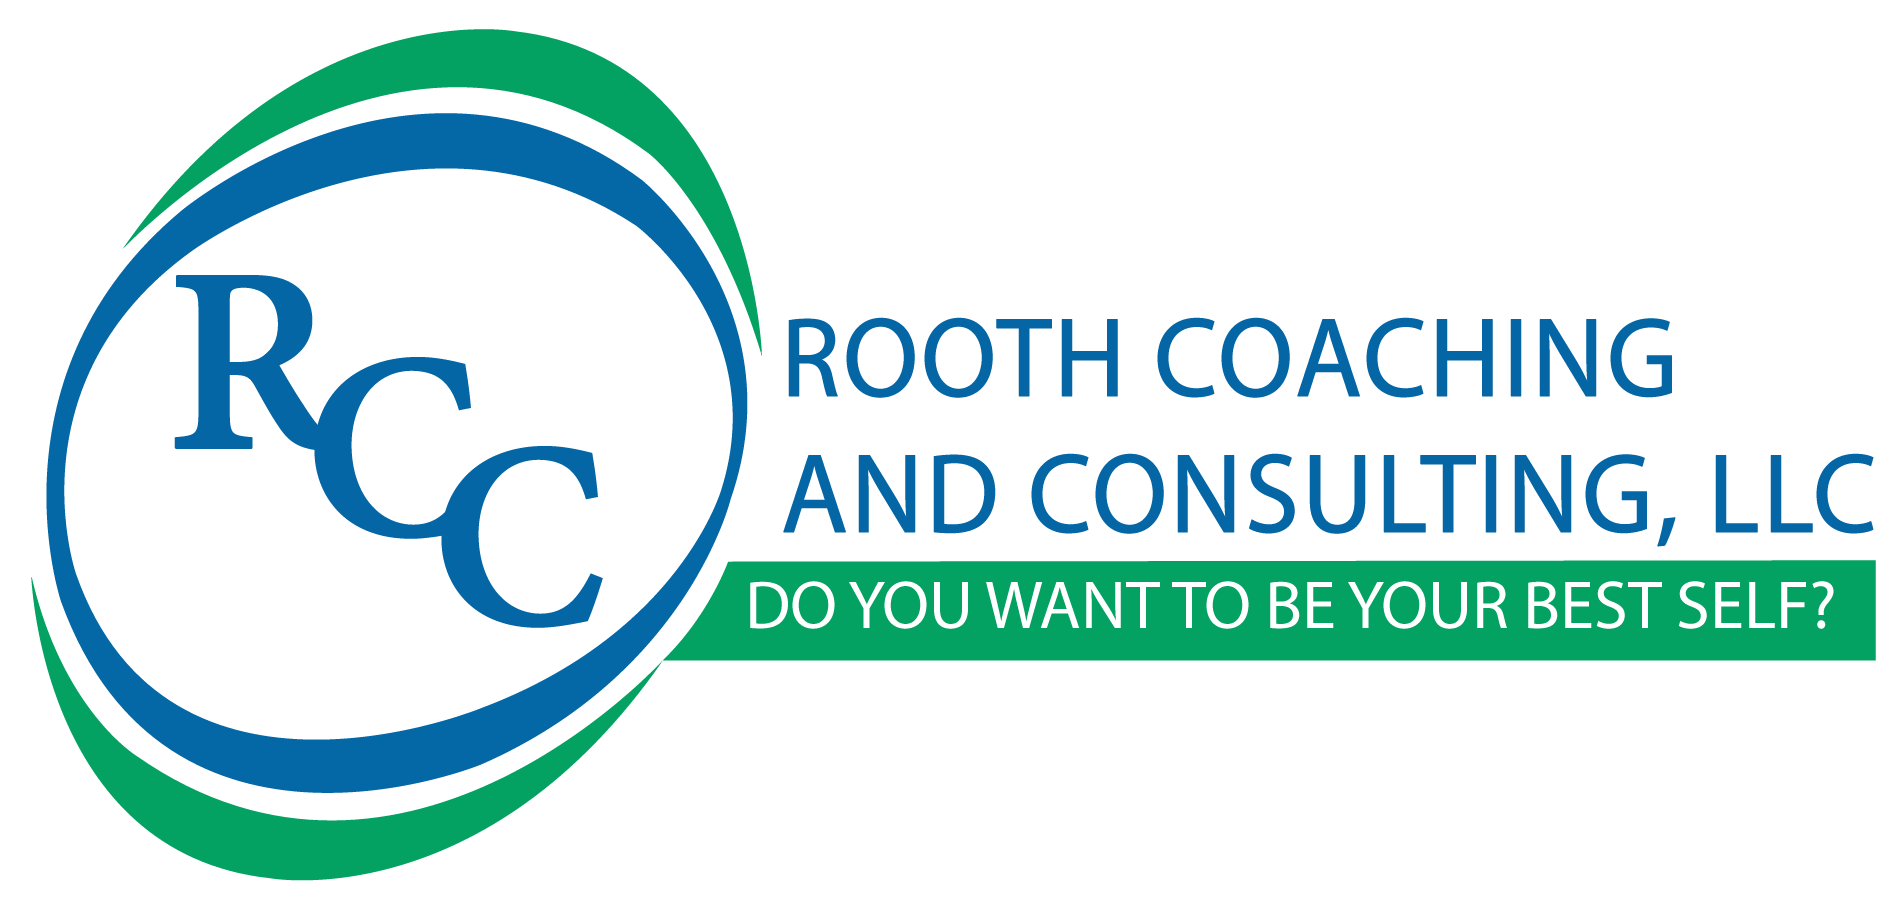 career coaching rooth coaching and consulting rooth coaching and consulting